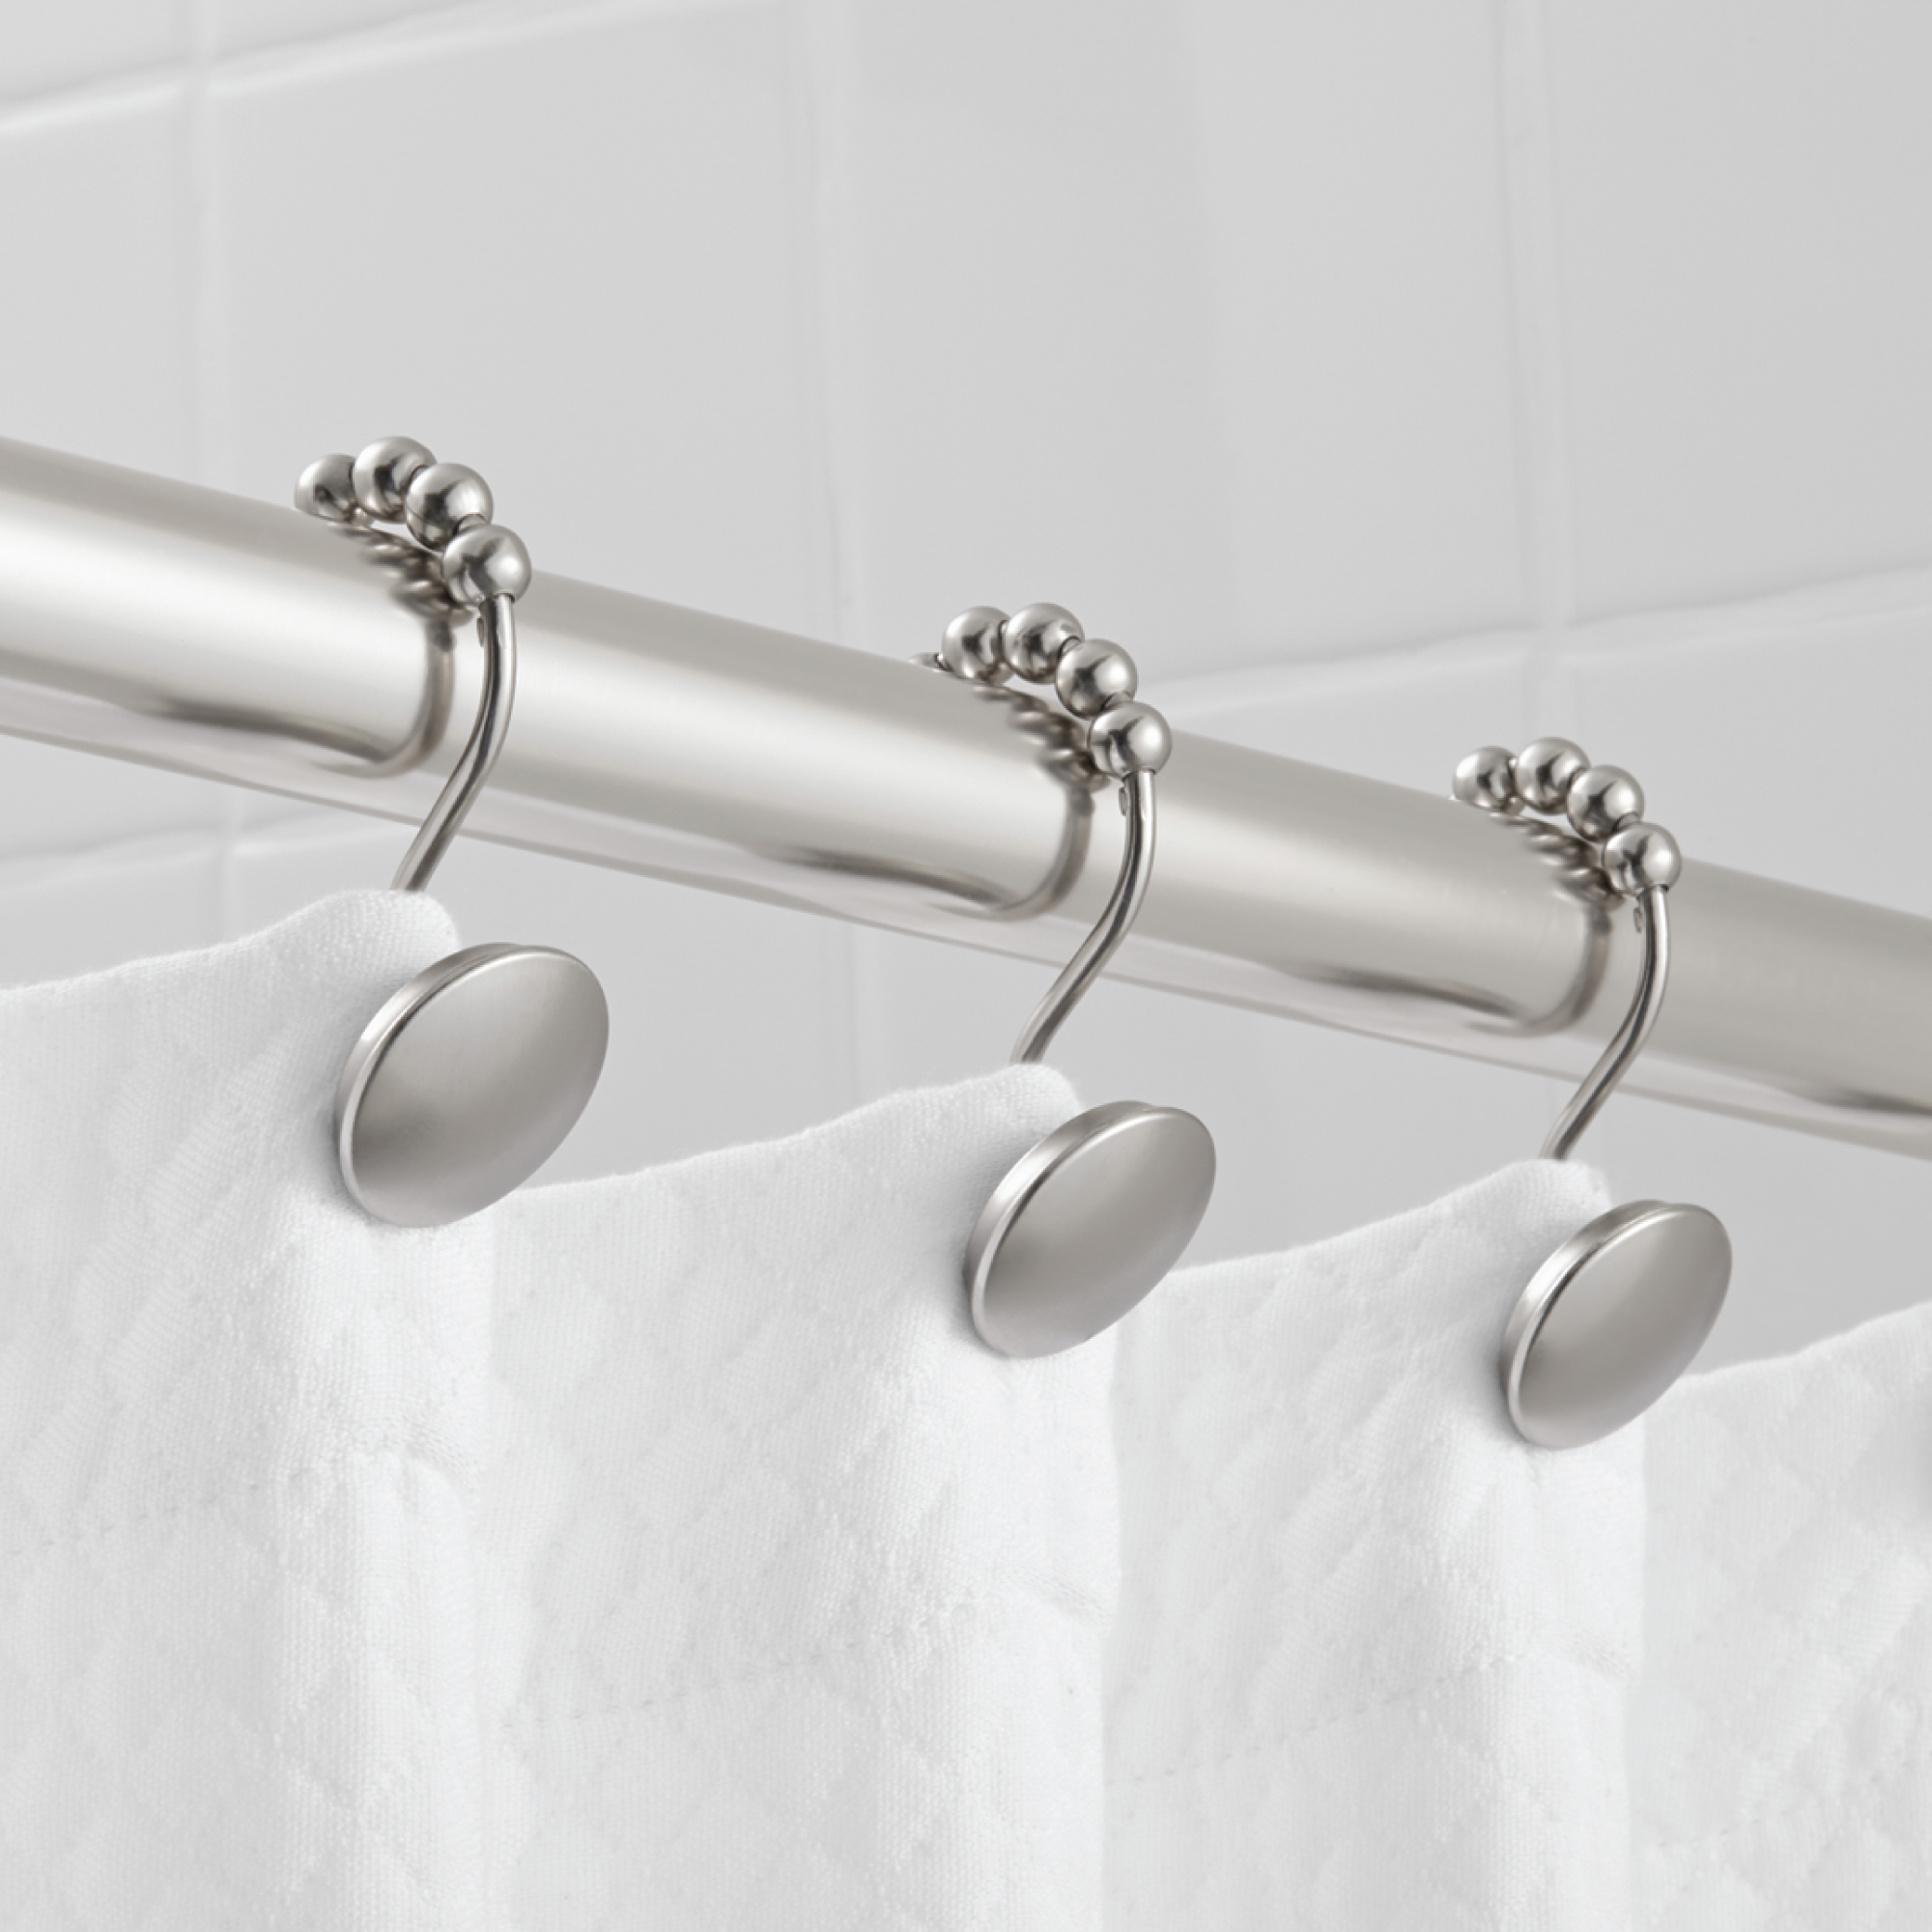 Hotel Style Peyton Shower Hooks with Easy Glide